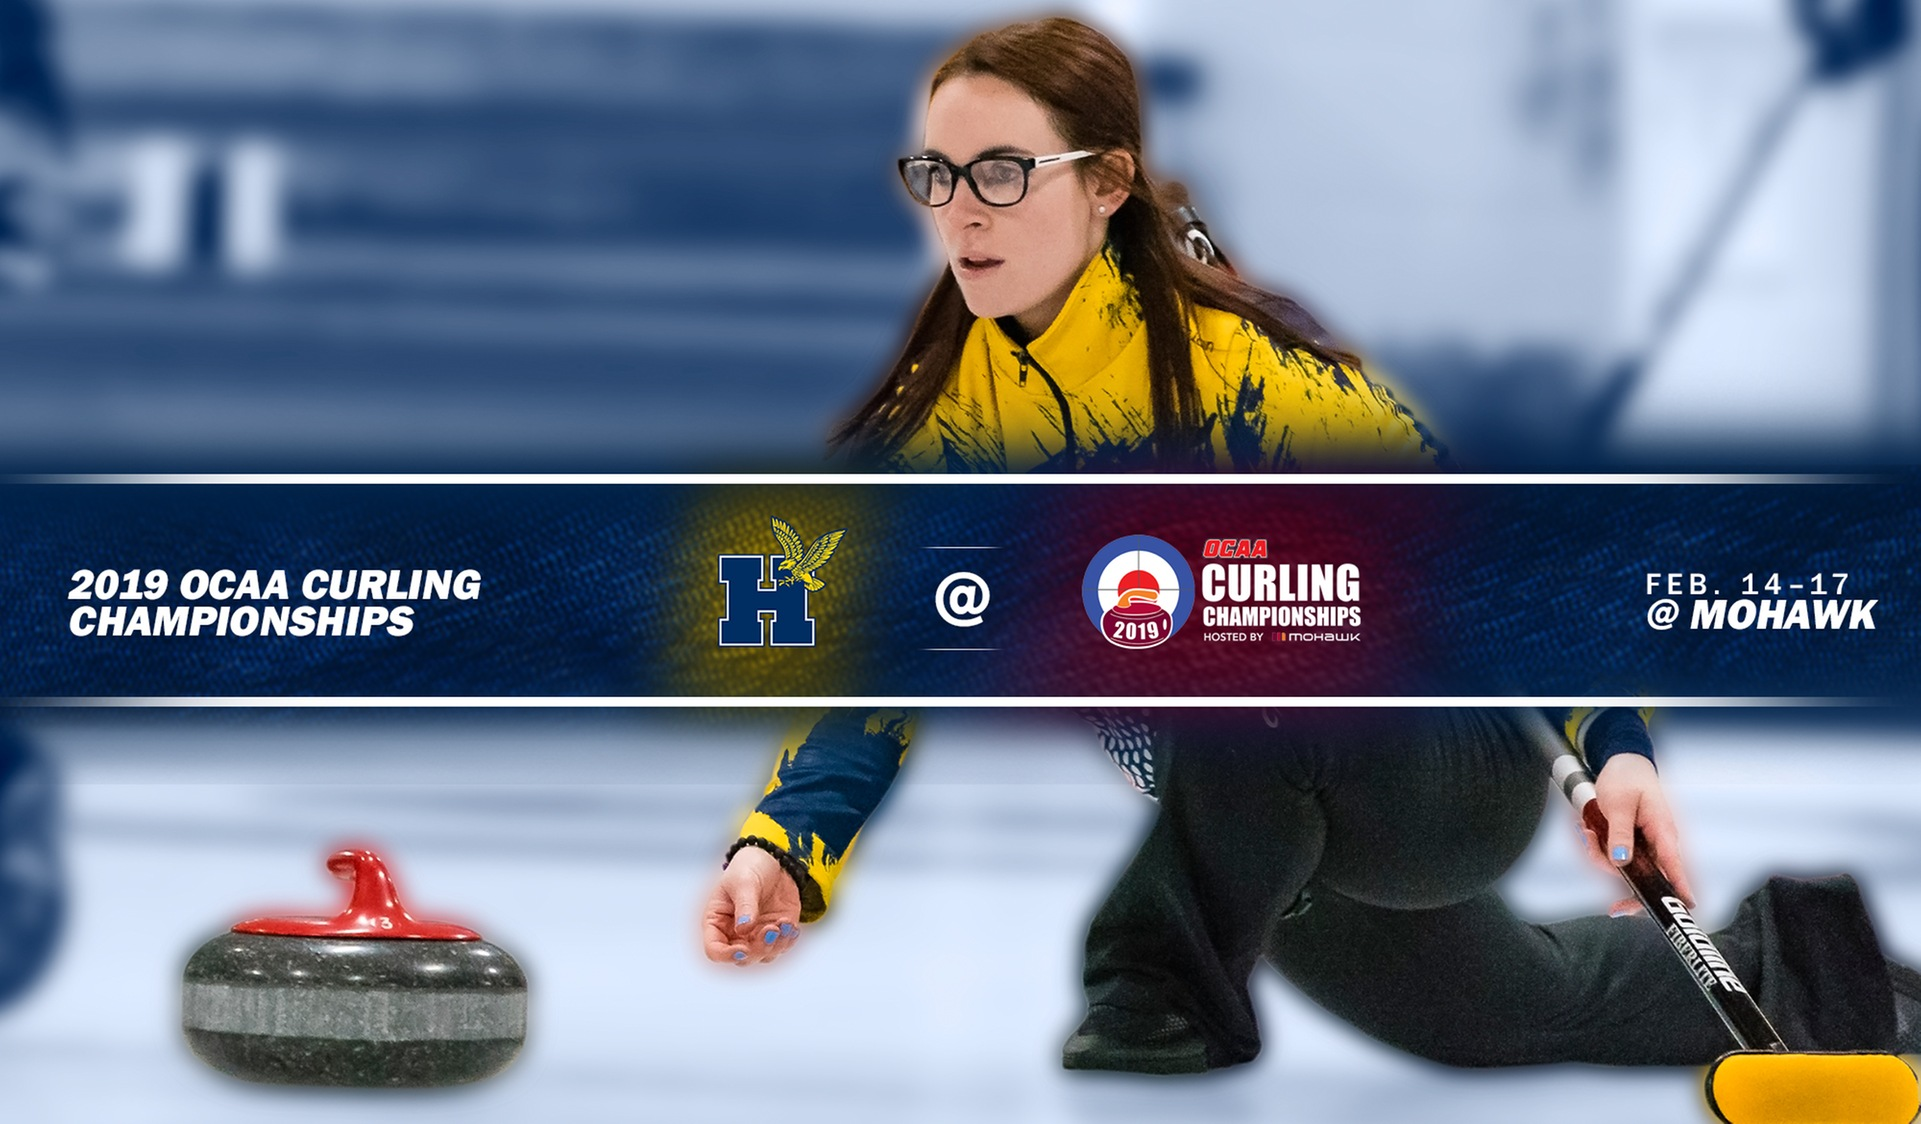 CURLERS ON ICE THIS WEEKEND AT OCAA CHAMPIONSHIPS IN HAMILTON